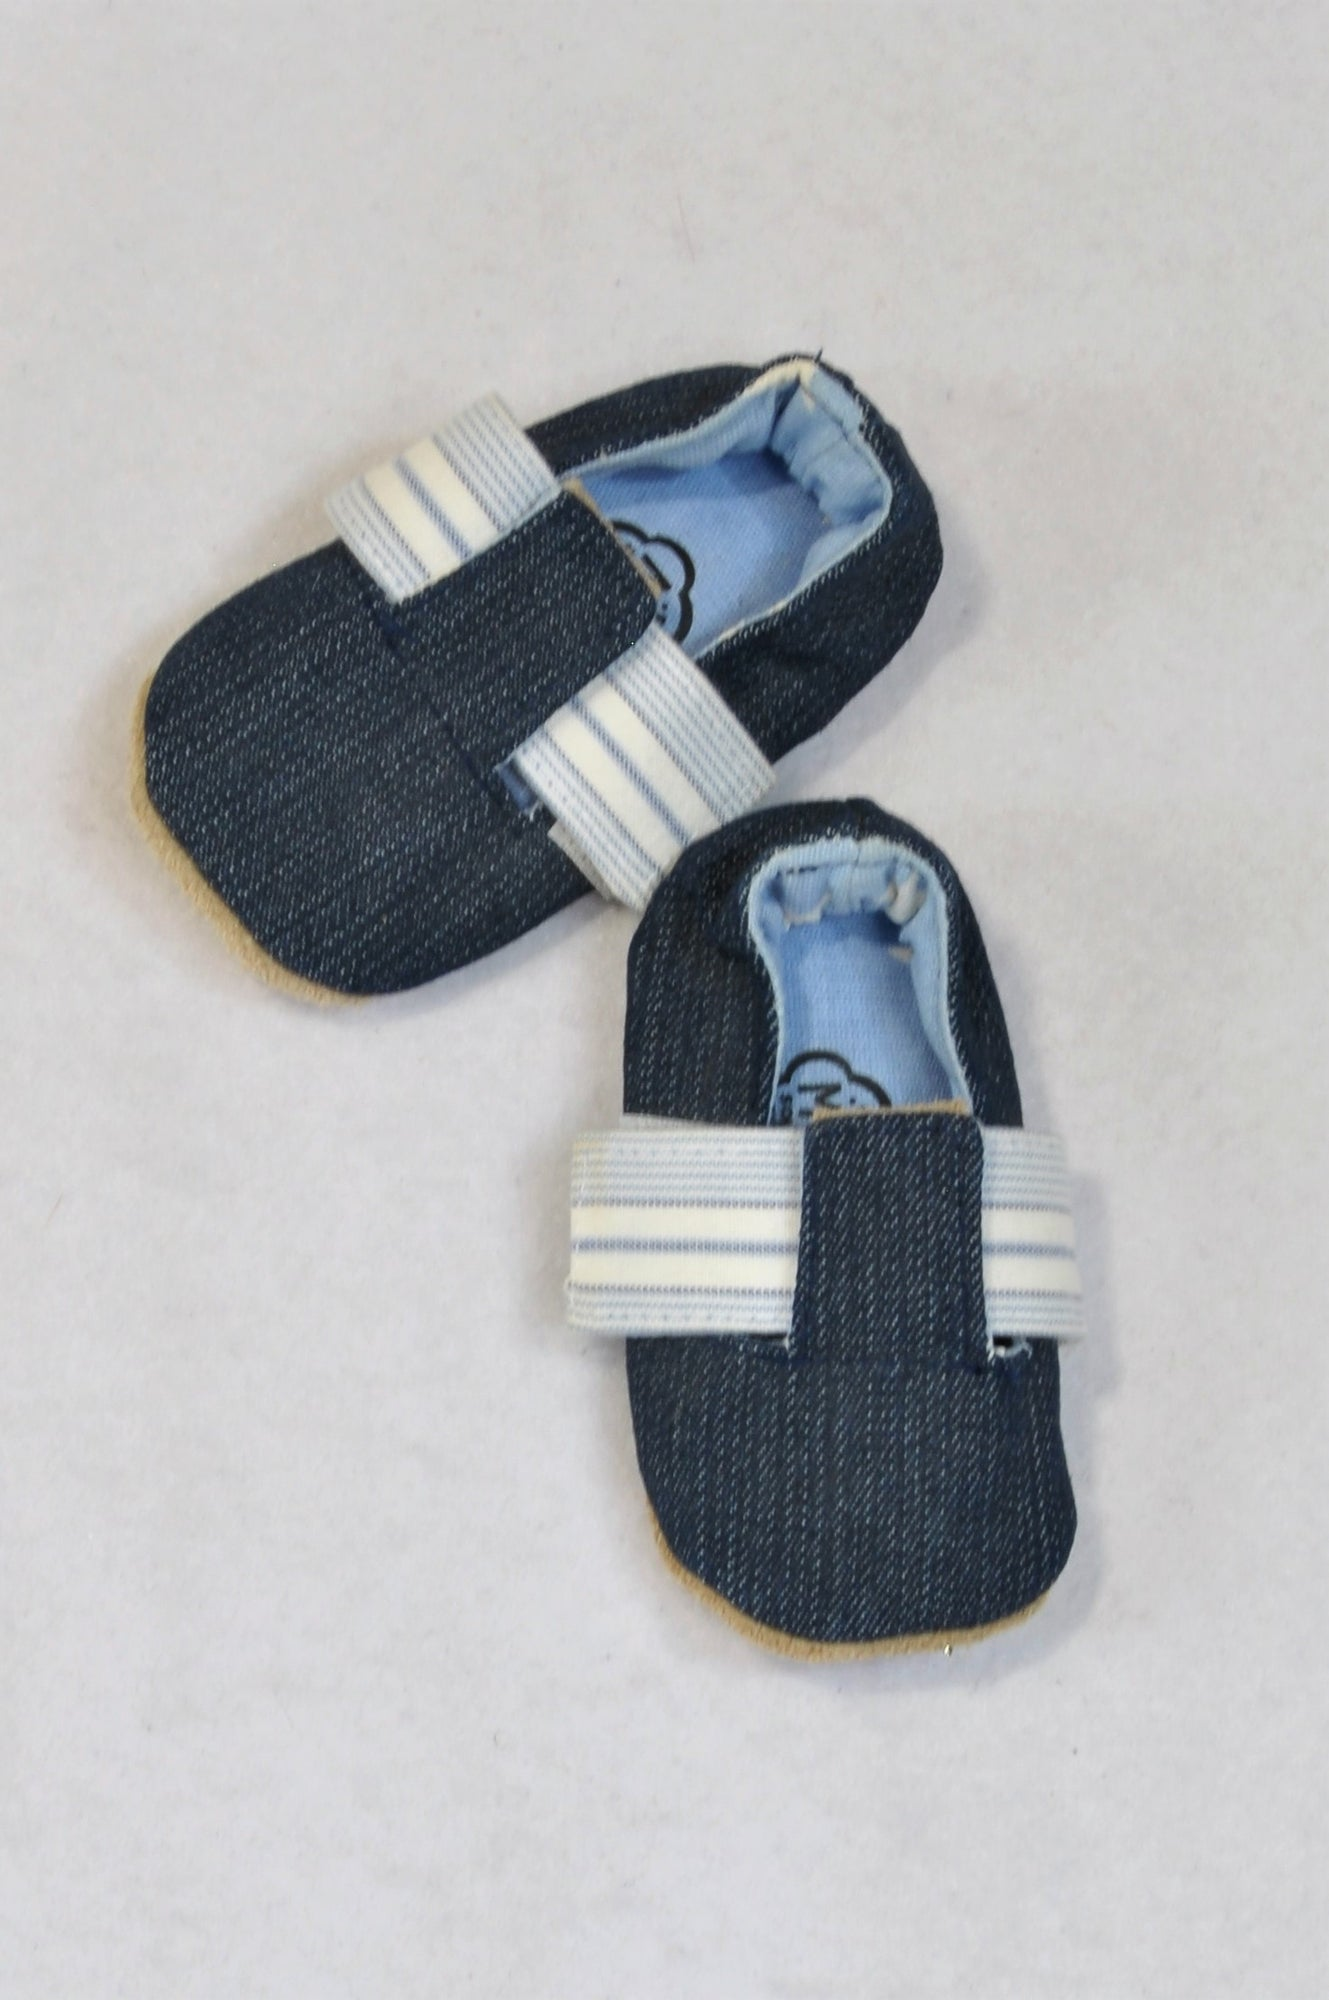 New Myang Size 1 Denim Belted Strap Shoes Unisex 3-6 months